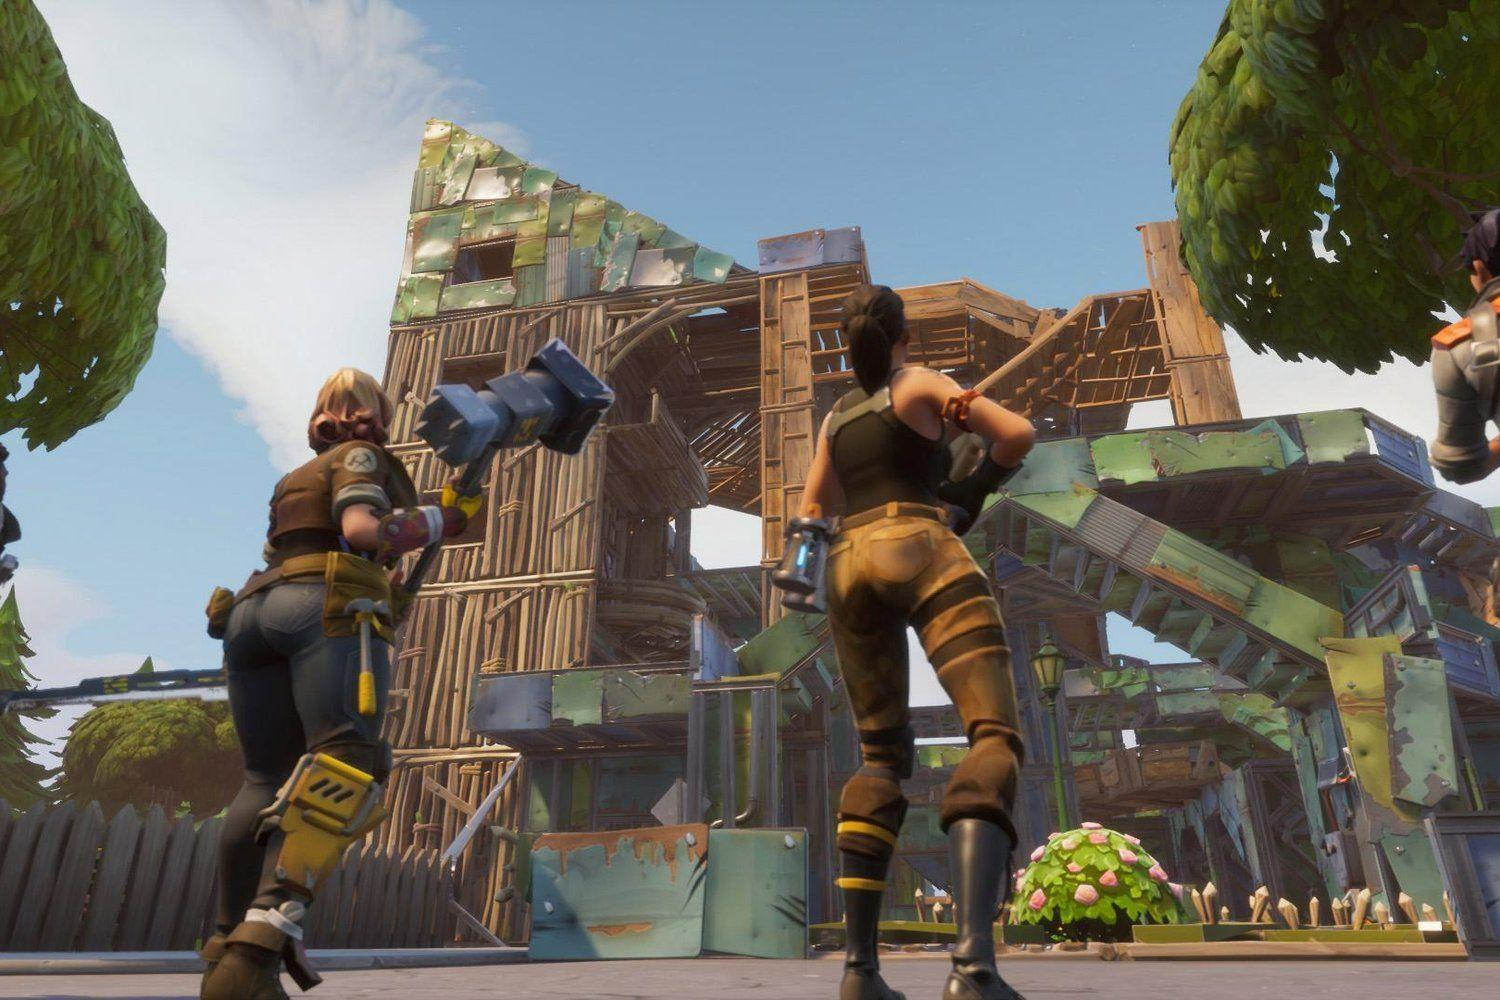 Fortnite players: The 10 types of players we all know